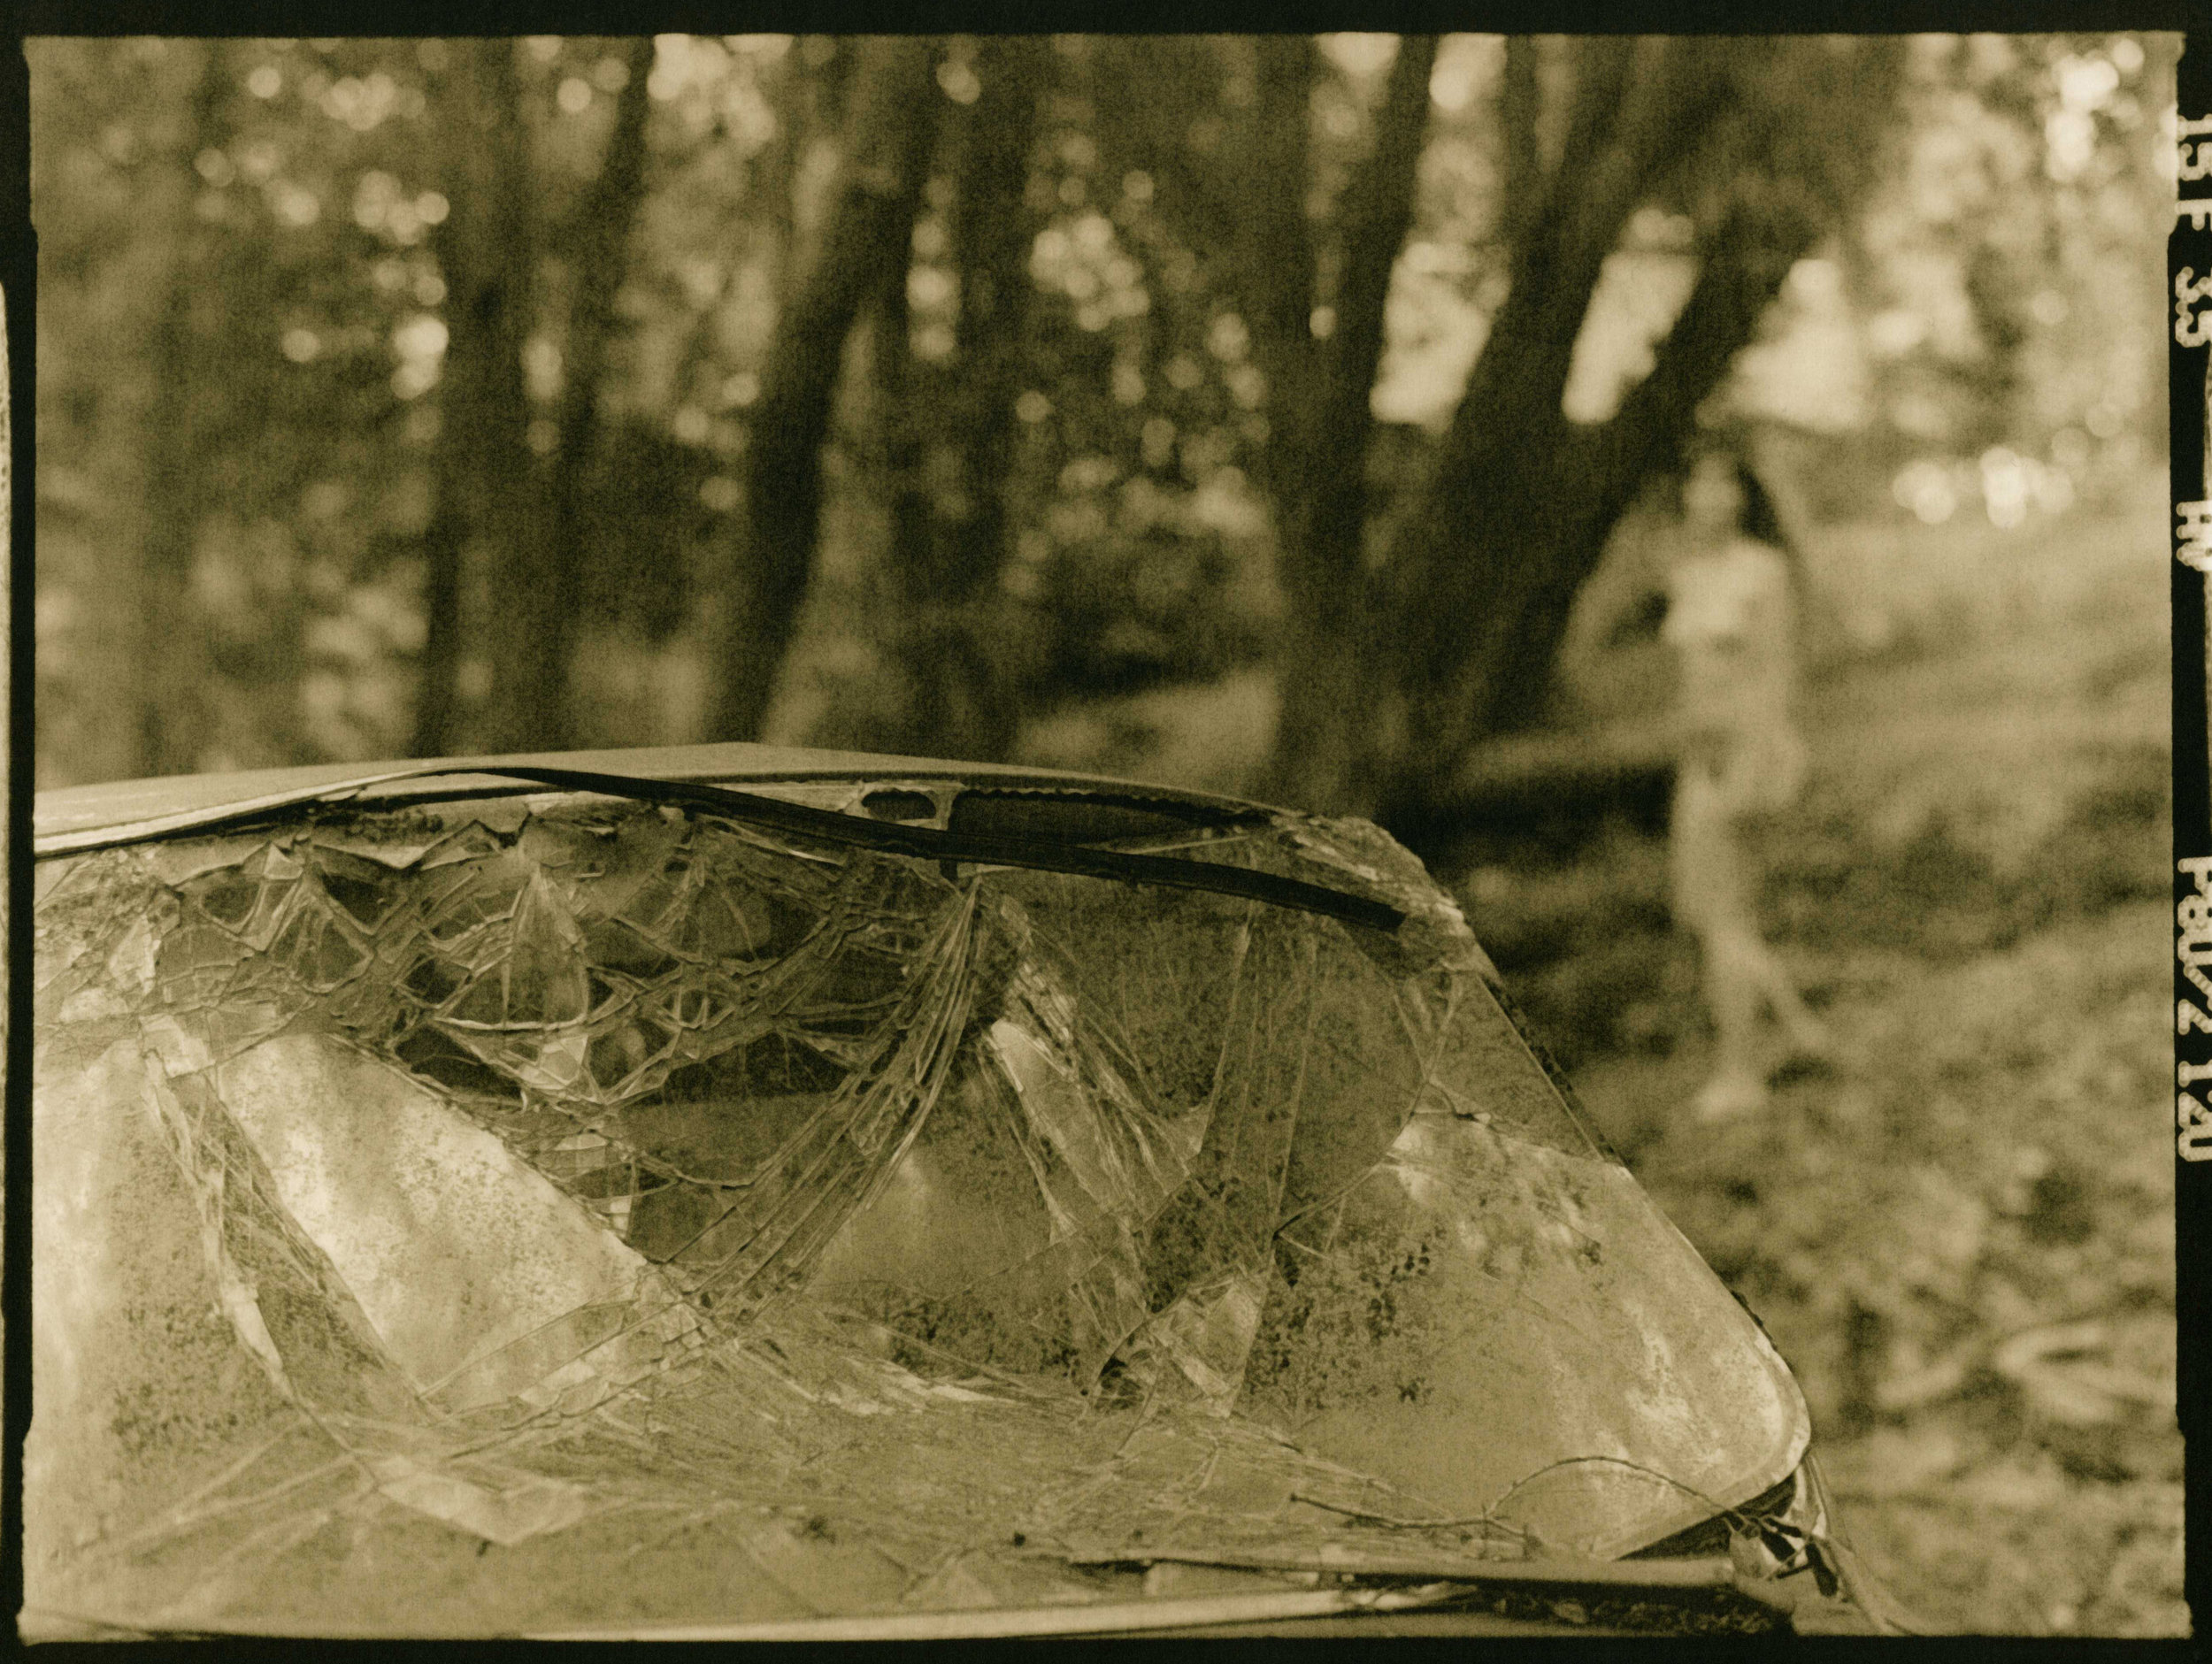 Cracked Windshield, 2010